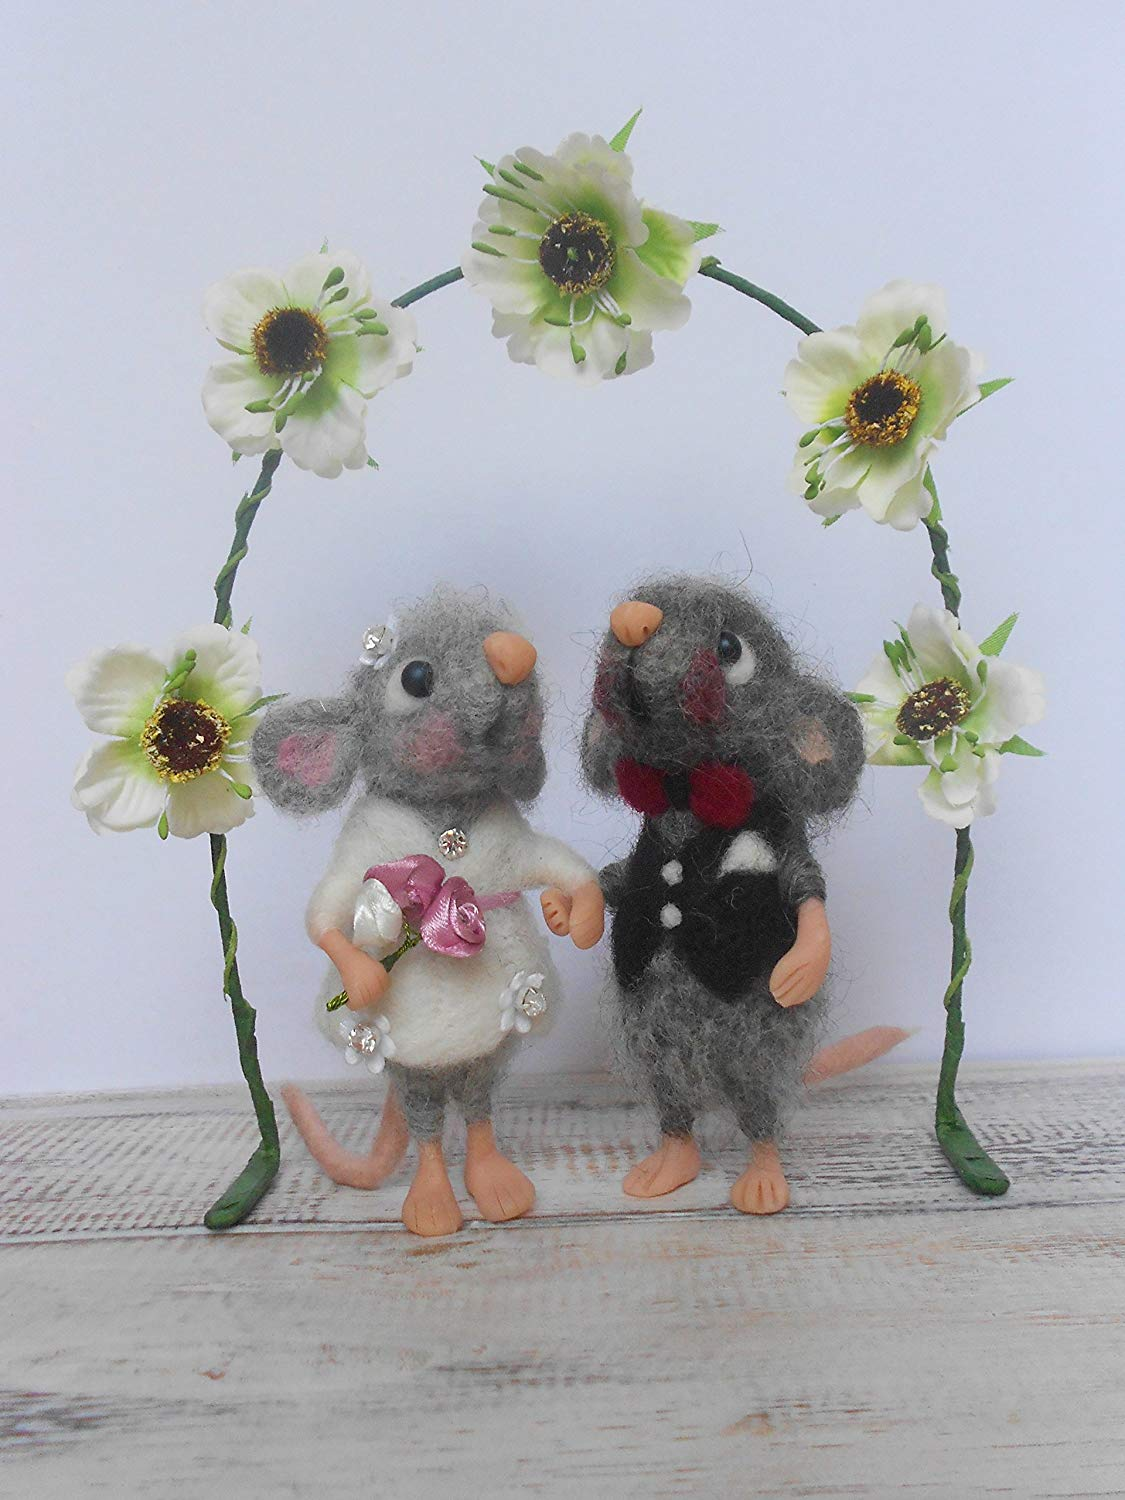 Wedding Gift Ideas For Bride And Groom.Cheap Groom Bride Wedding Gift Ideas Find Groom Bride